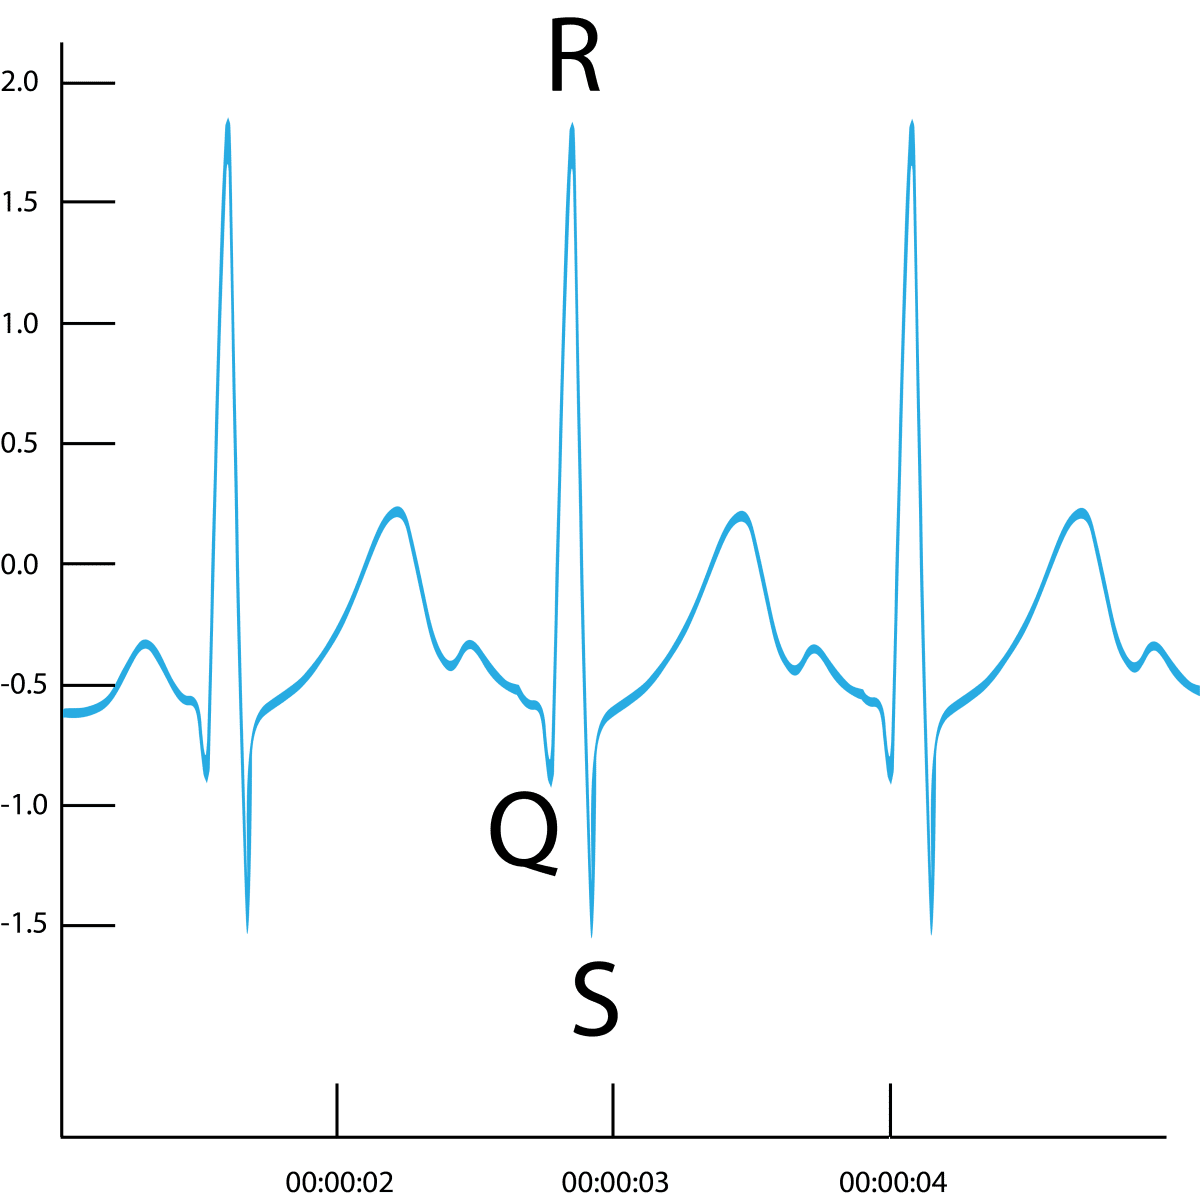 Biopac ECG heartrate